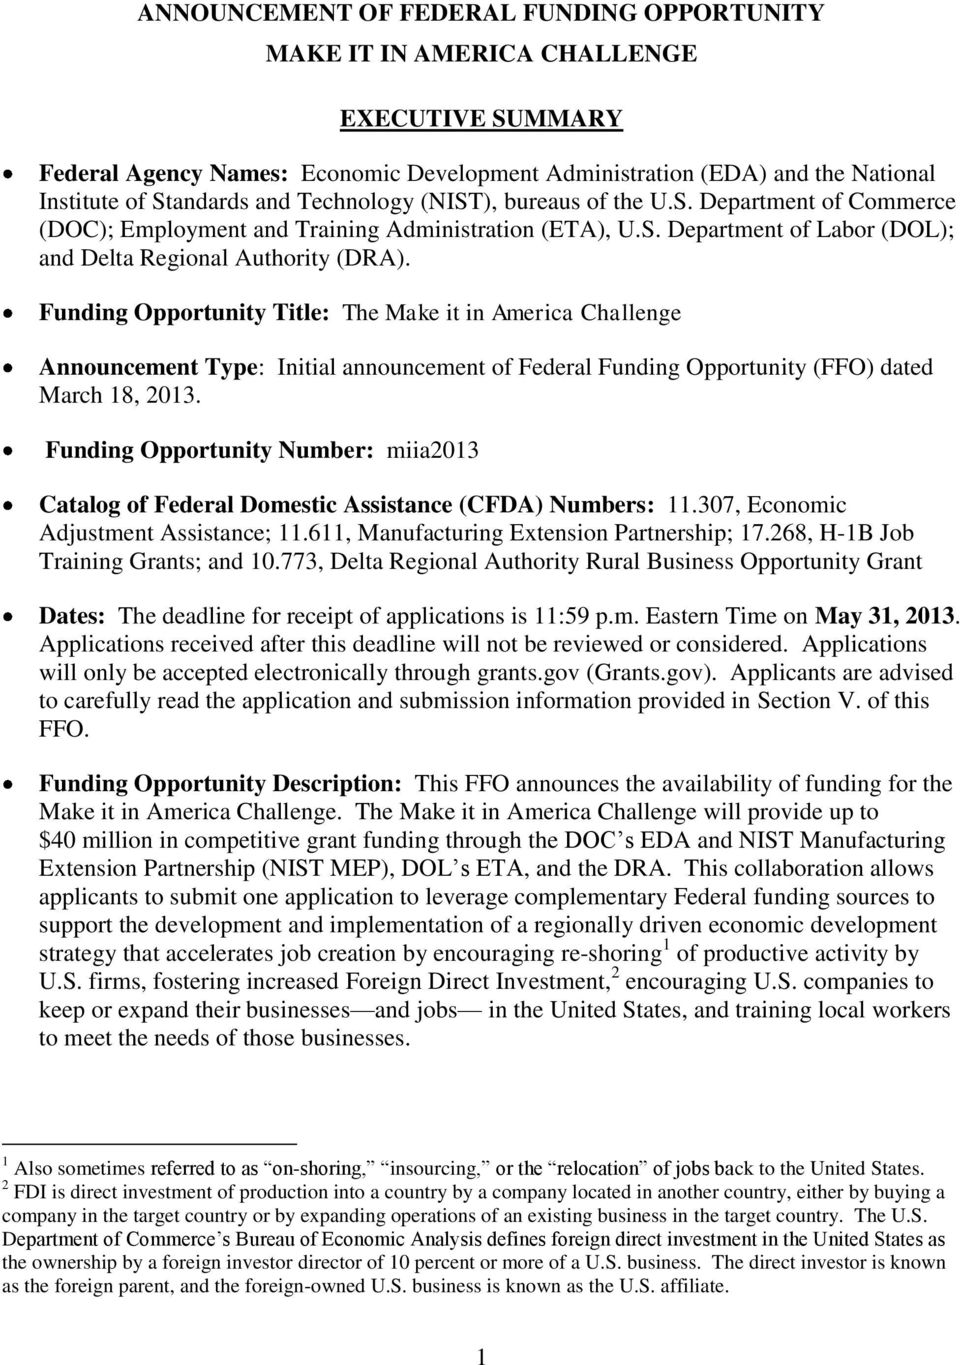 Funding Opportunity Title: The Make it in America Challenge Announcement Type: Initial announcement of Federal Funding Opportunity (FFO) dated March 18, 2013.